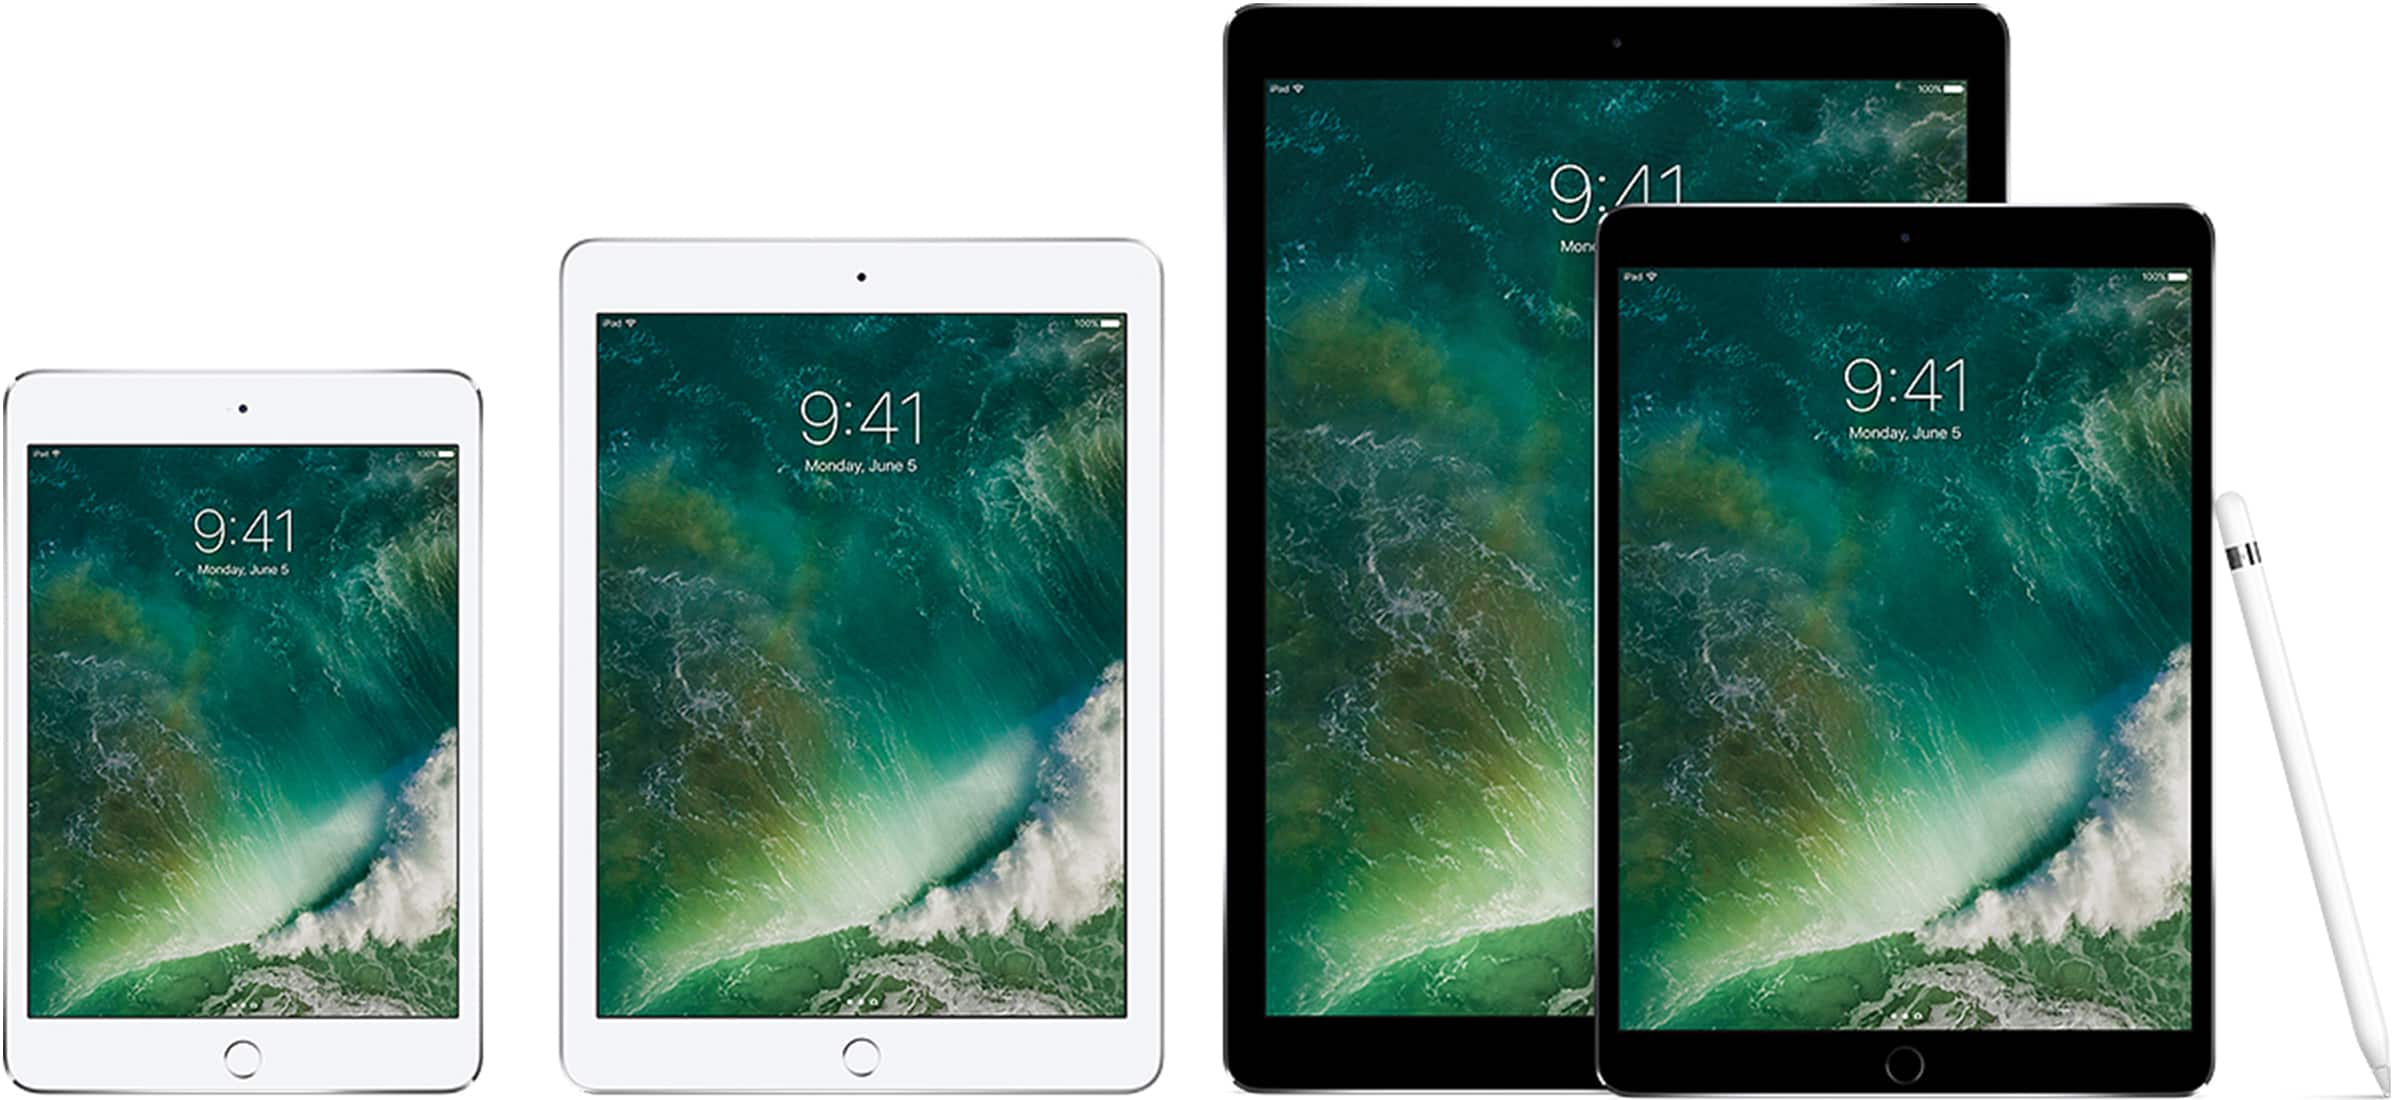 Apple Ipad Pro 105 Inch Price Features And Specs Att 512gb New Silver Wifi Only Find The Thats Right For You